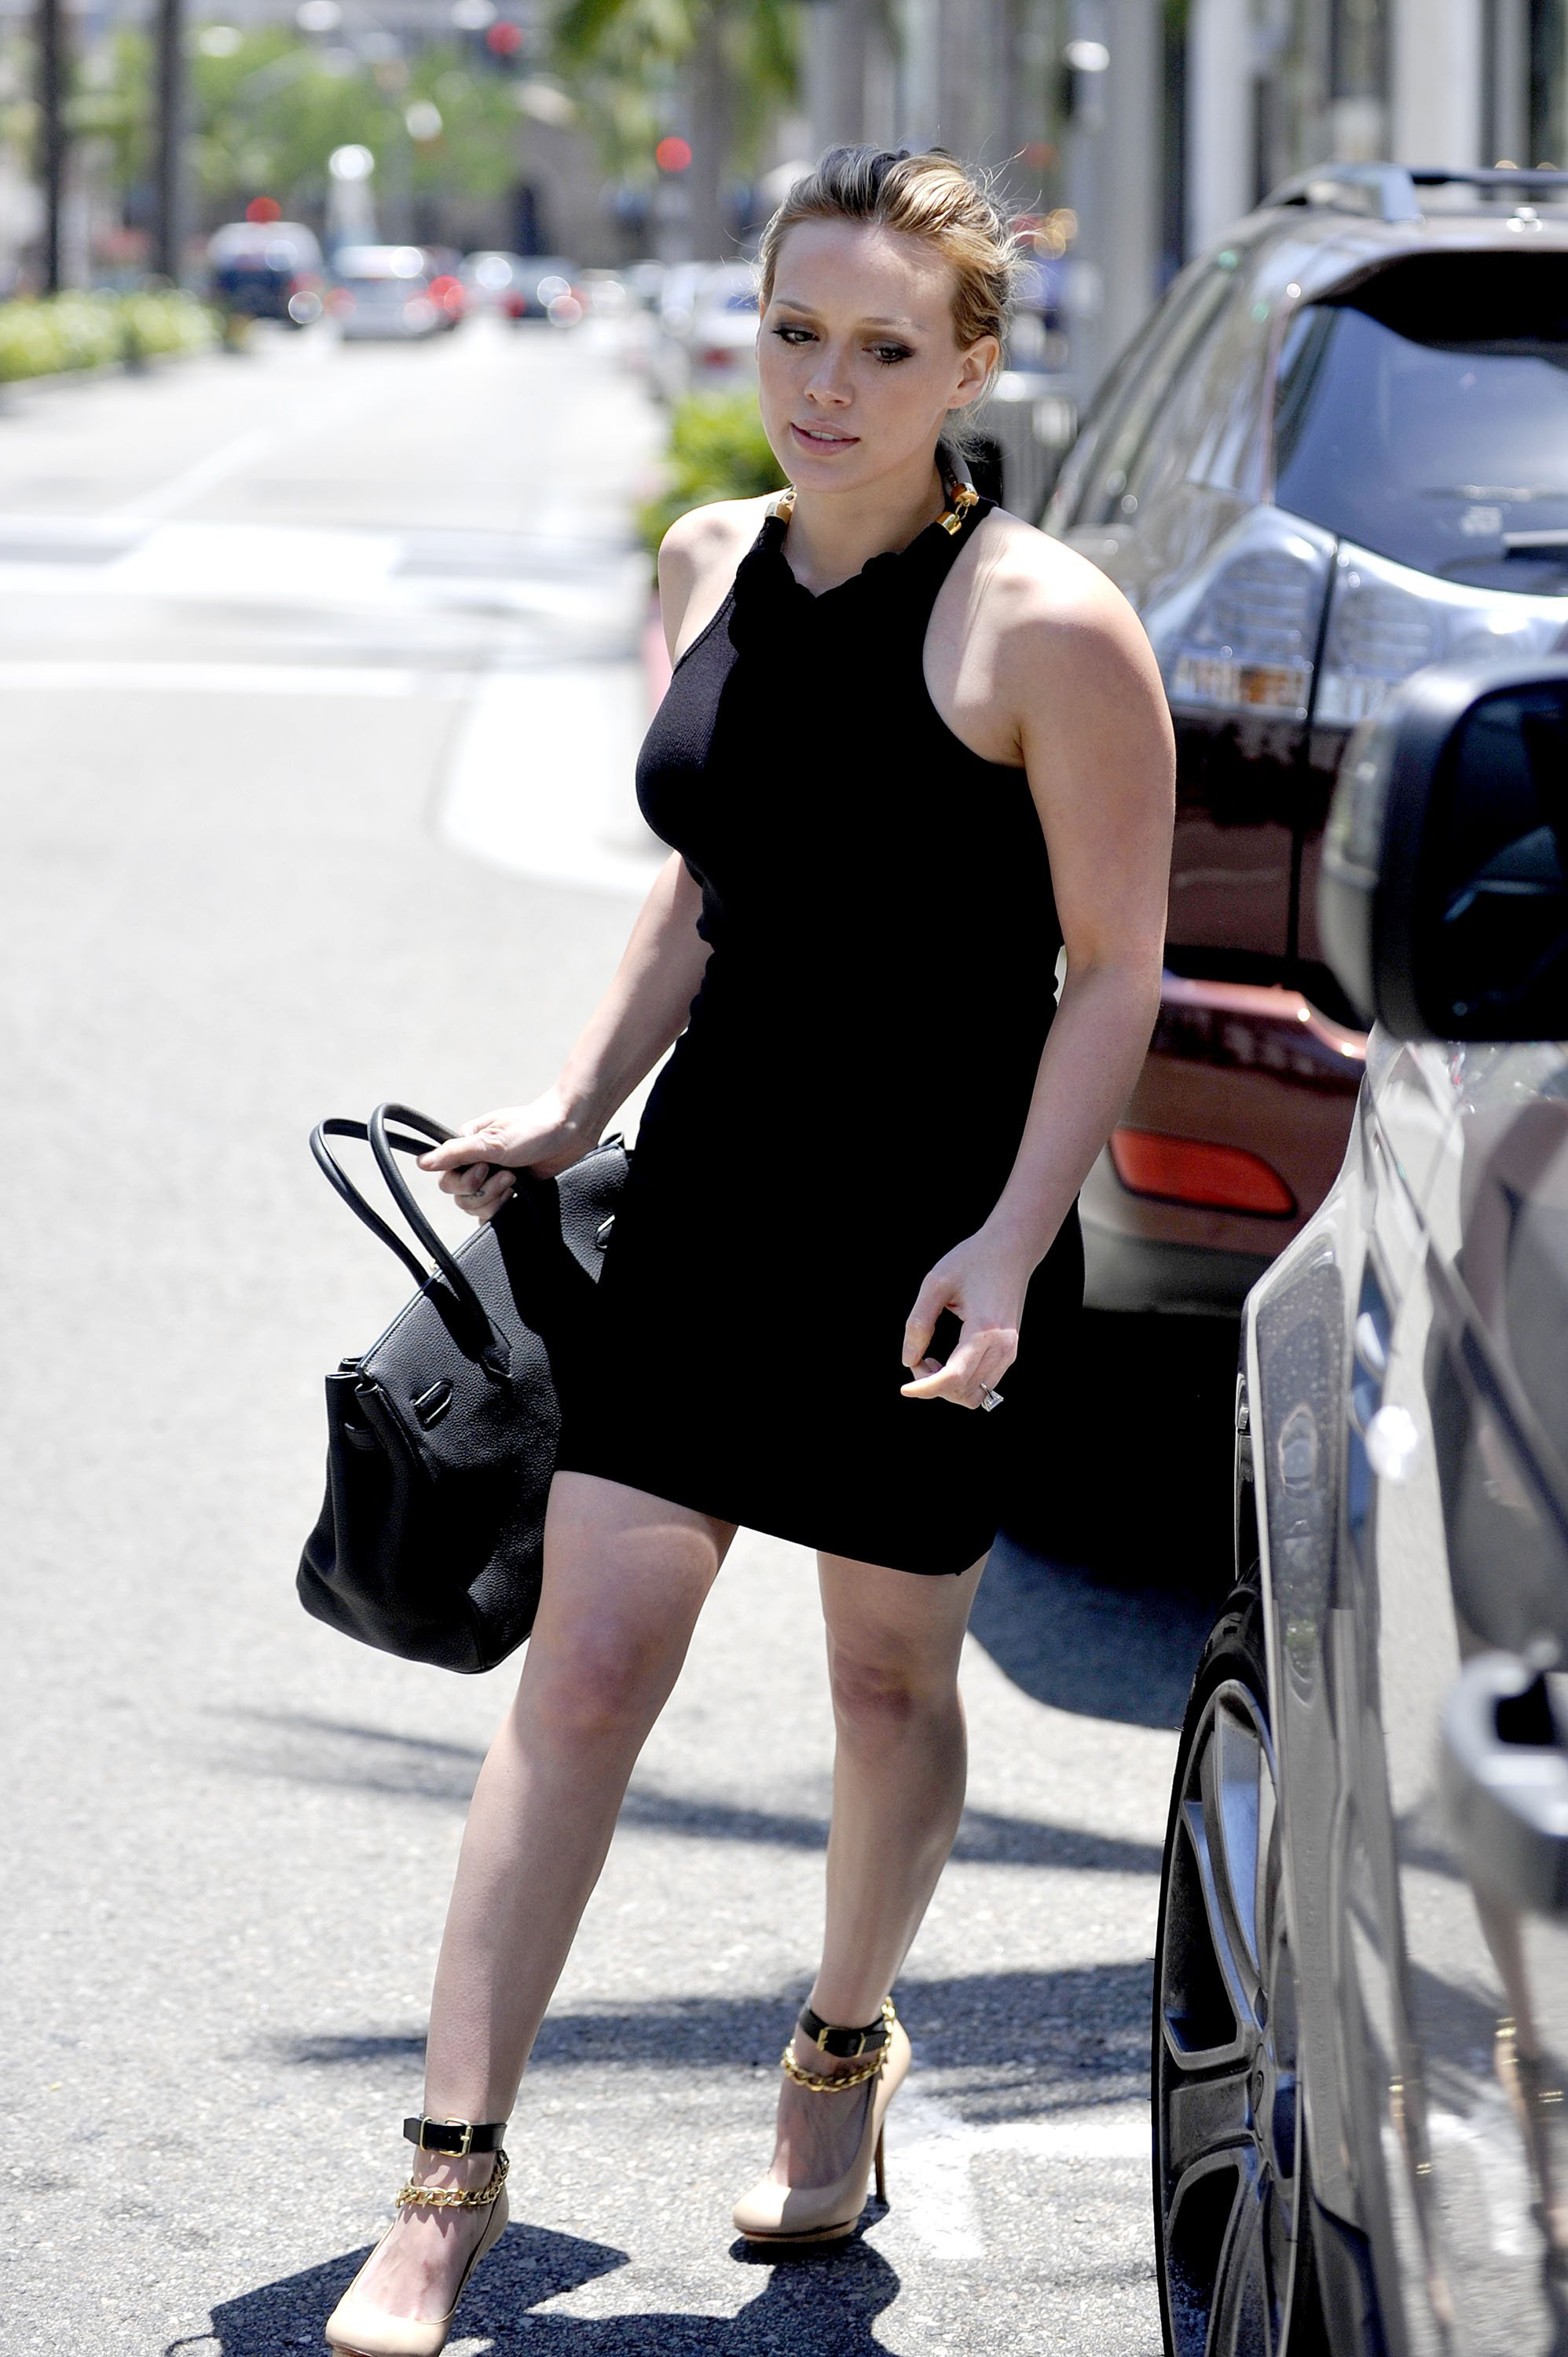 84885_Hilary_Duff_Gucci_Beverly_Hills4_122_519lo.jpg